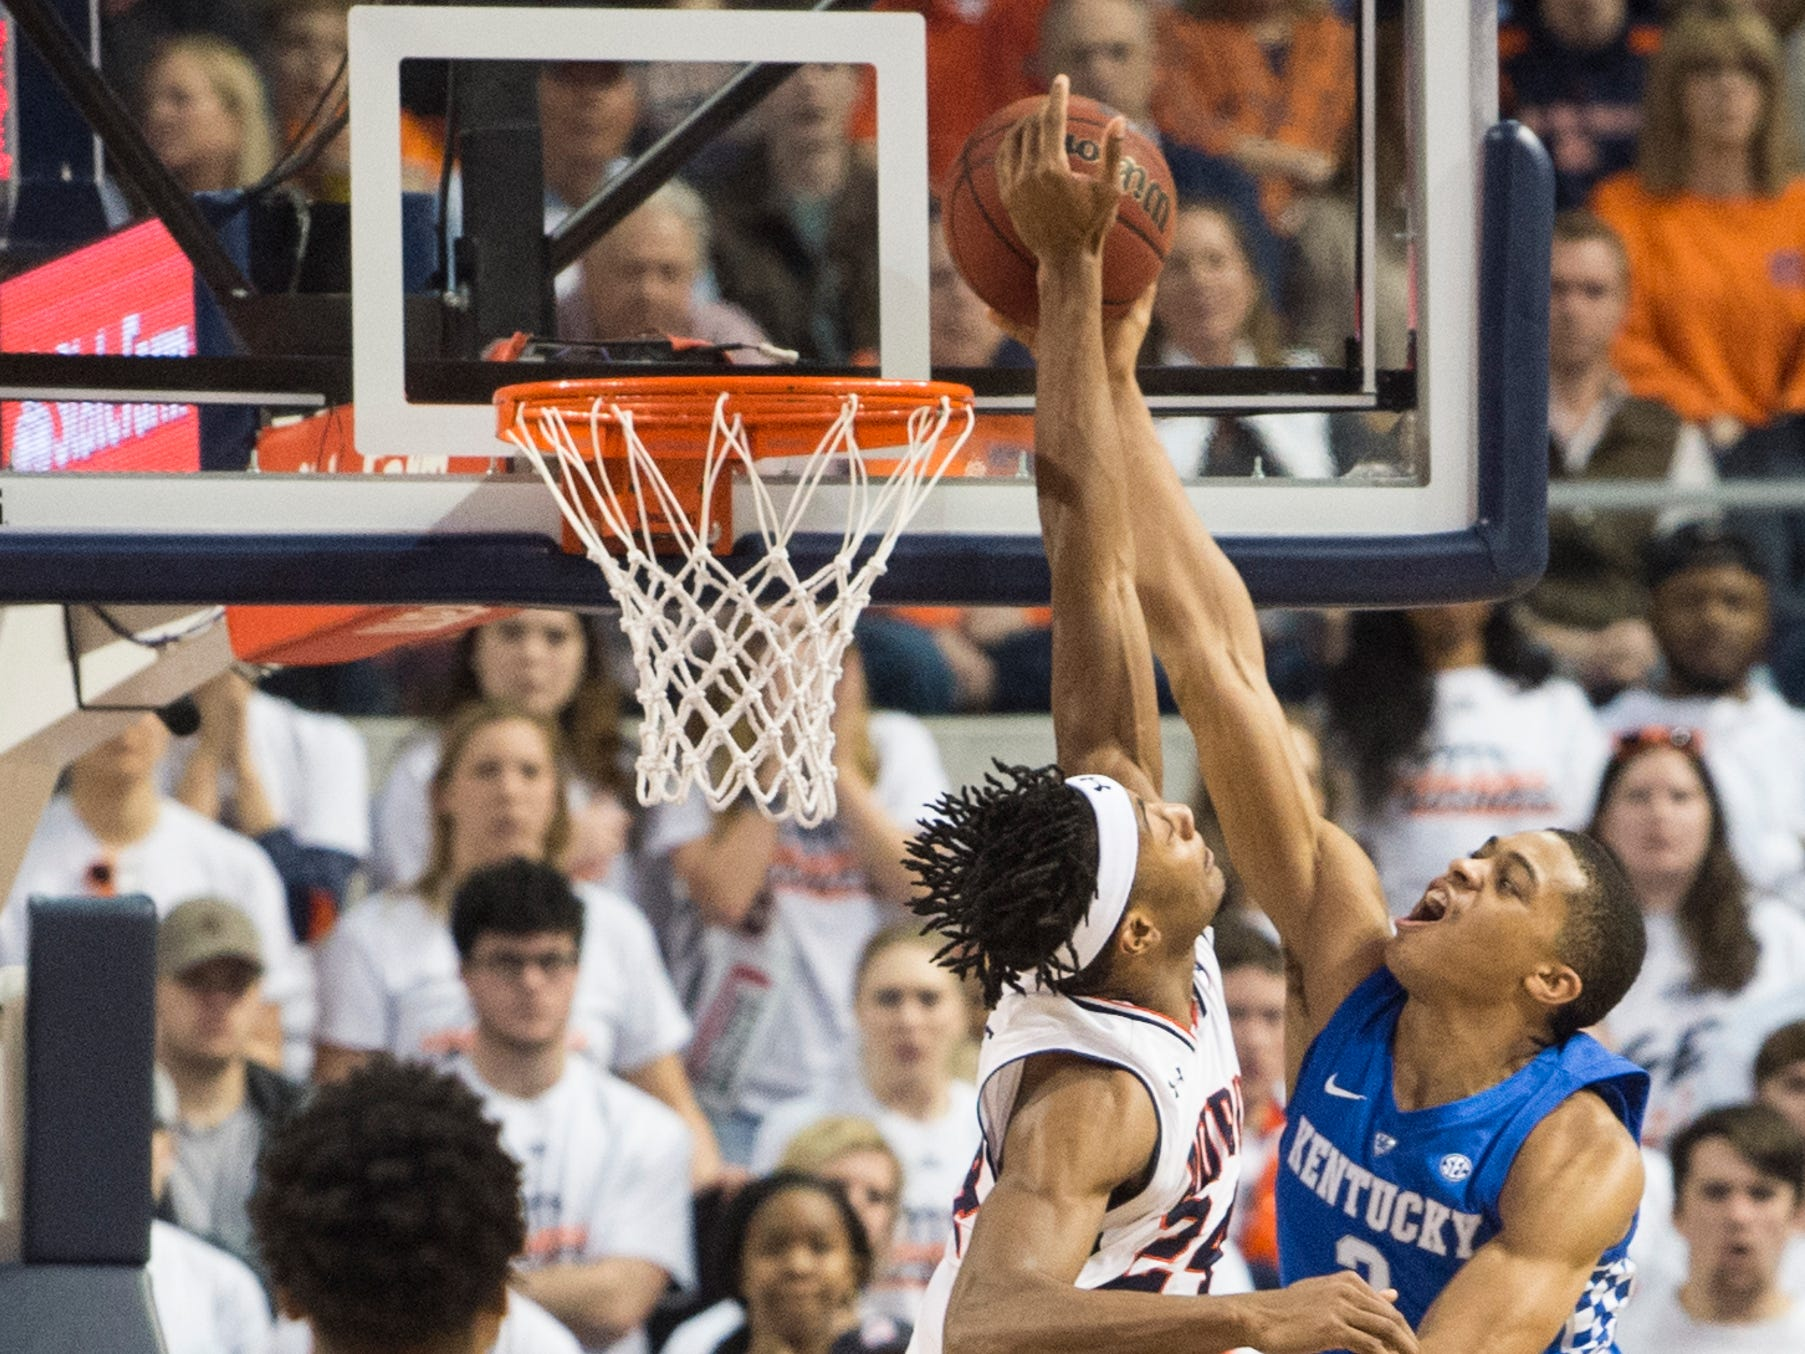 Auburn forward Anfernee McLemore (24) blocks Kentucky guard Keldon Johnson (3) at Auburn Arena in Auburn, Ala., on Saturday, Jan. 19, 2019. The ball went in after the block for a Kentucky bucket. Kentucky leads Auburn 35-27 at halftime.